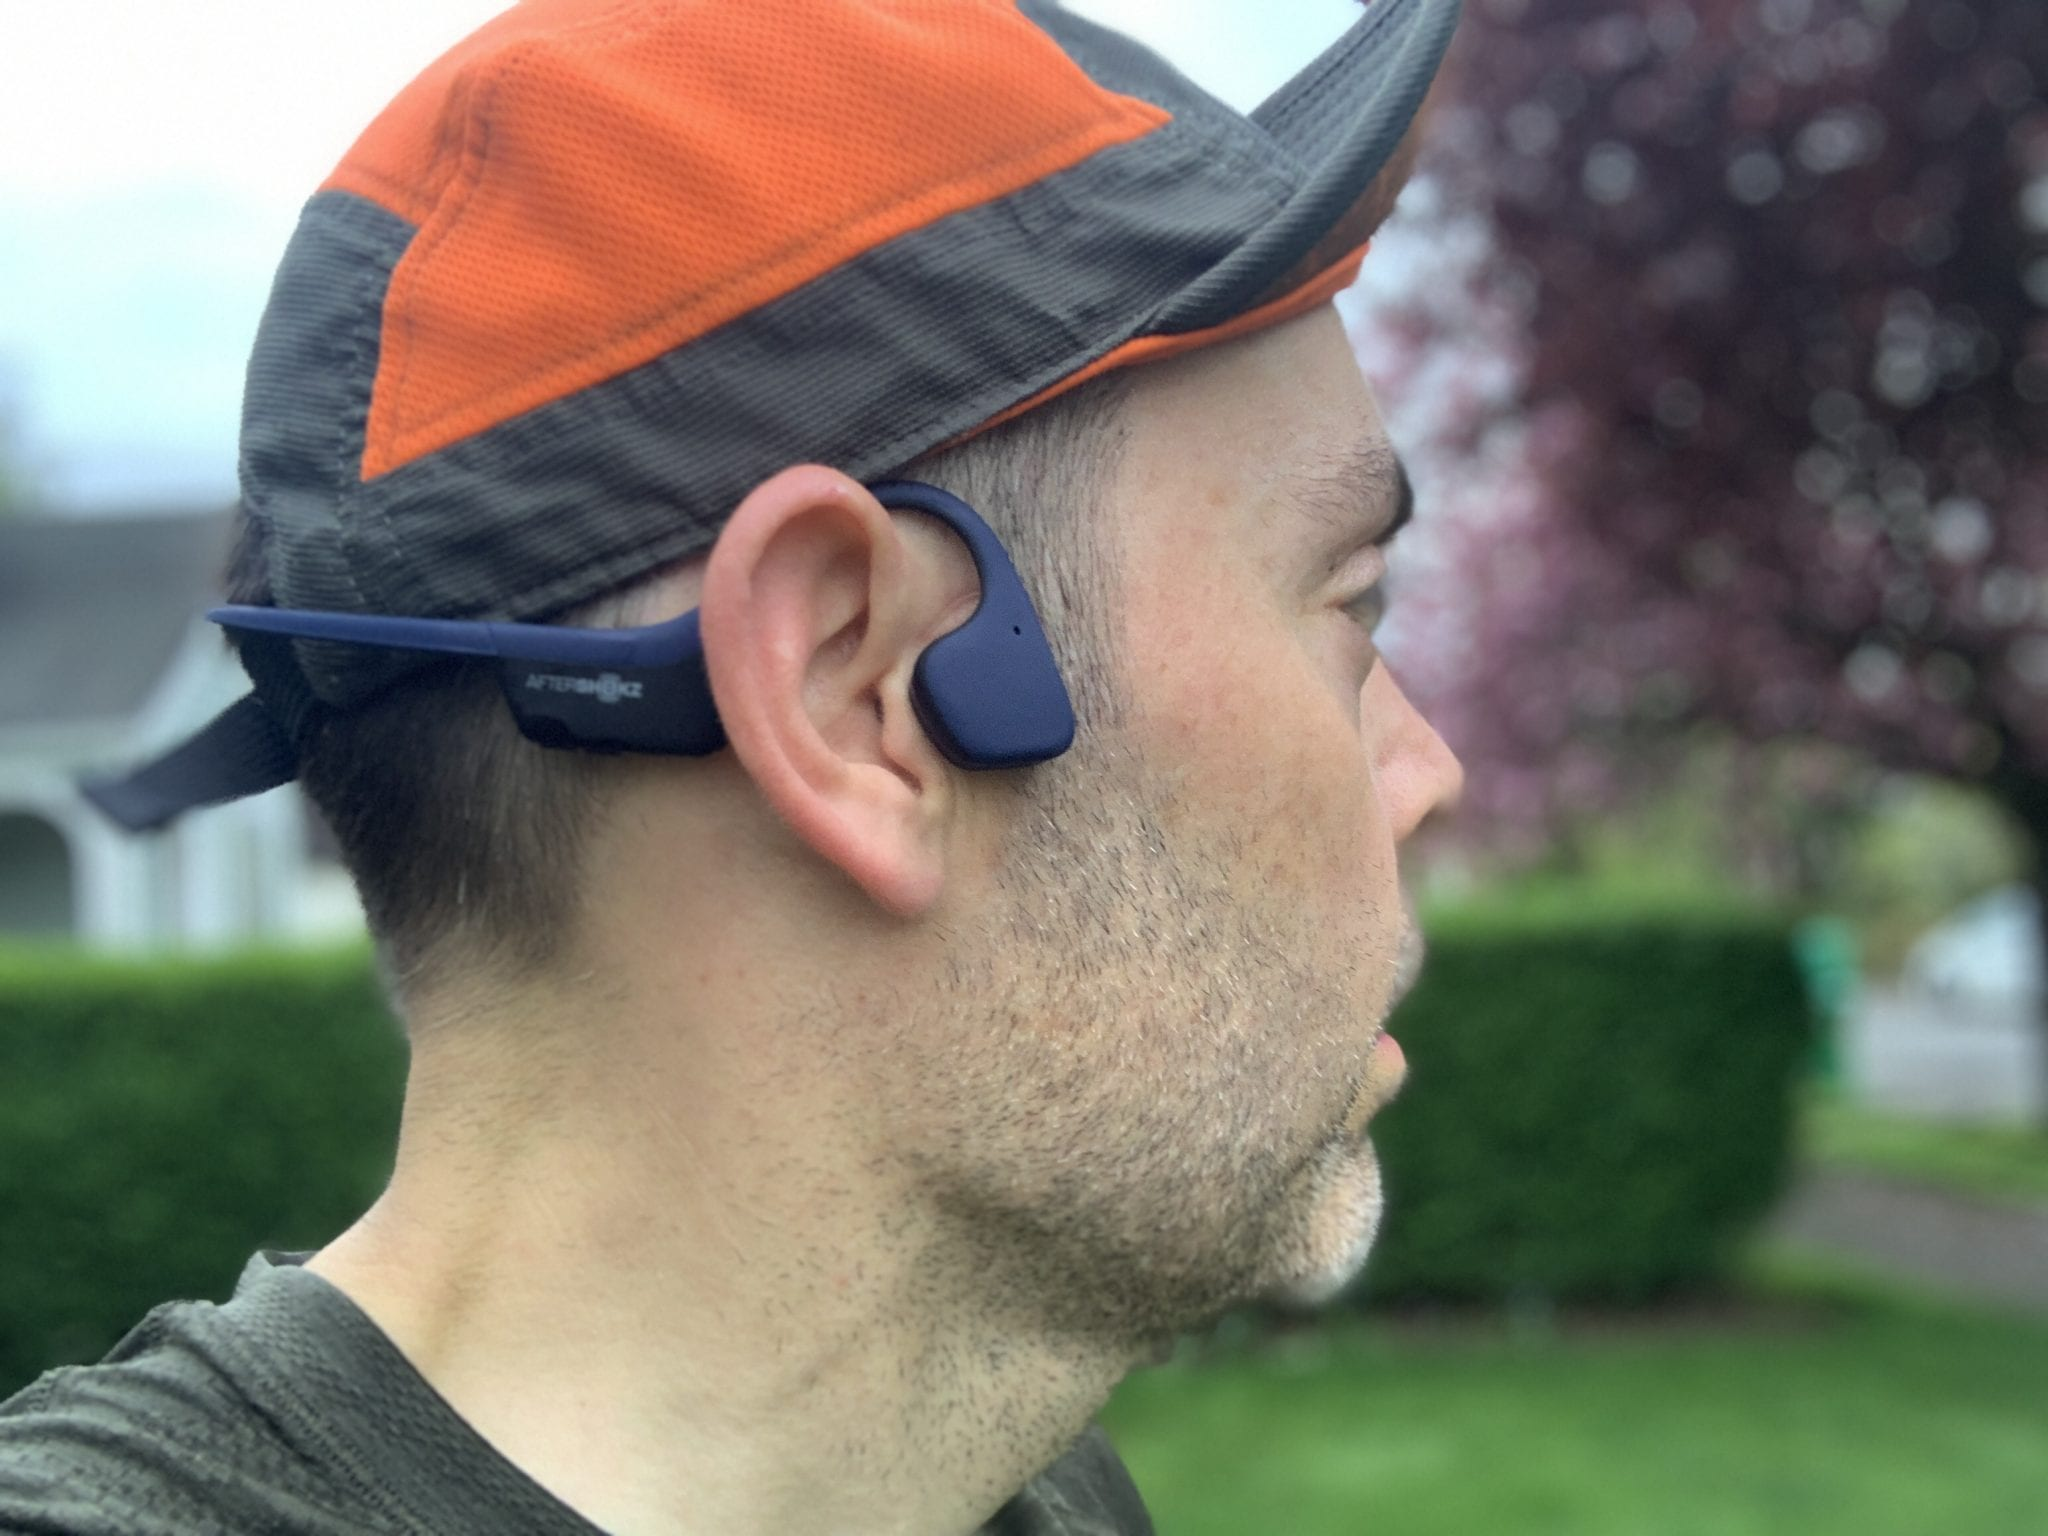 A view of the Aftershokz Trekz Air on head